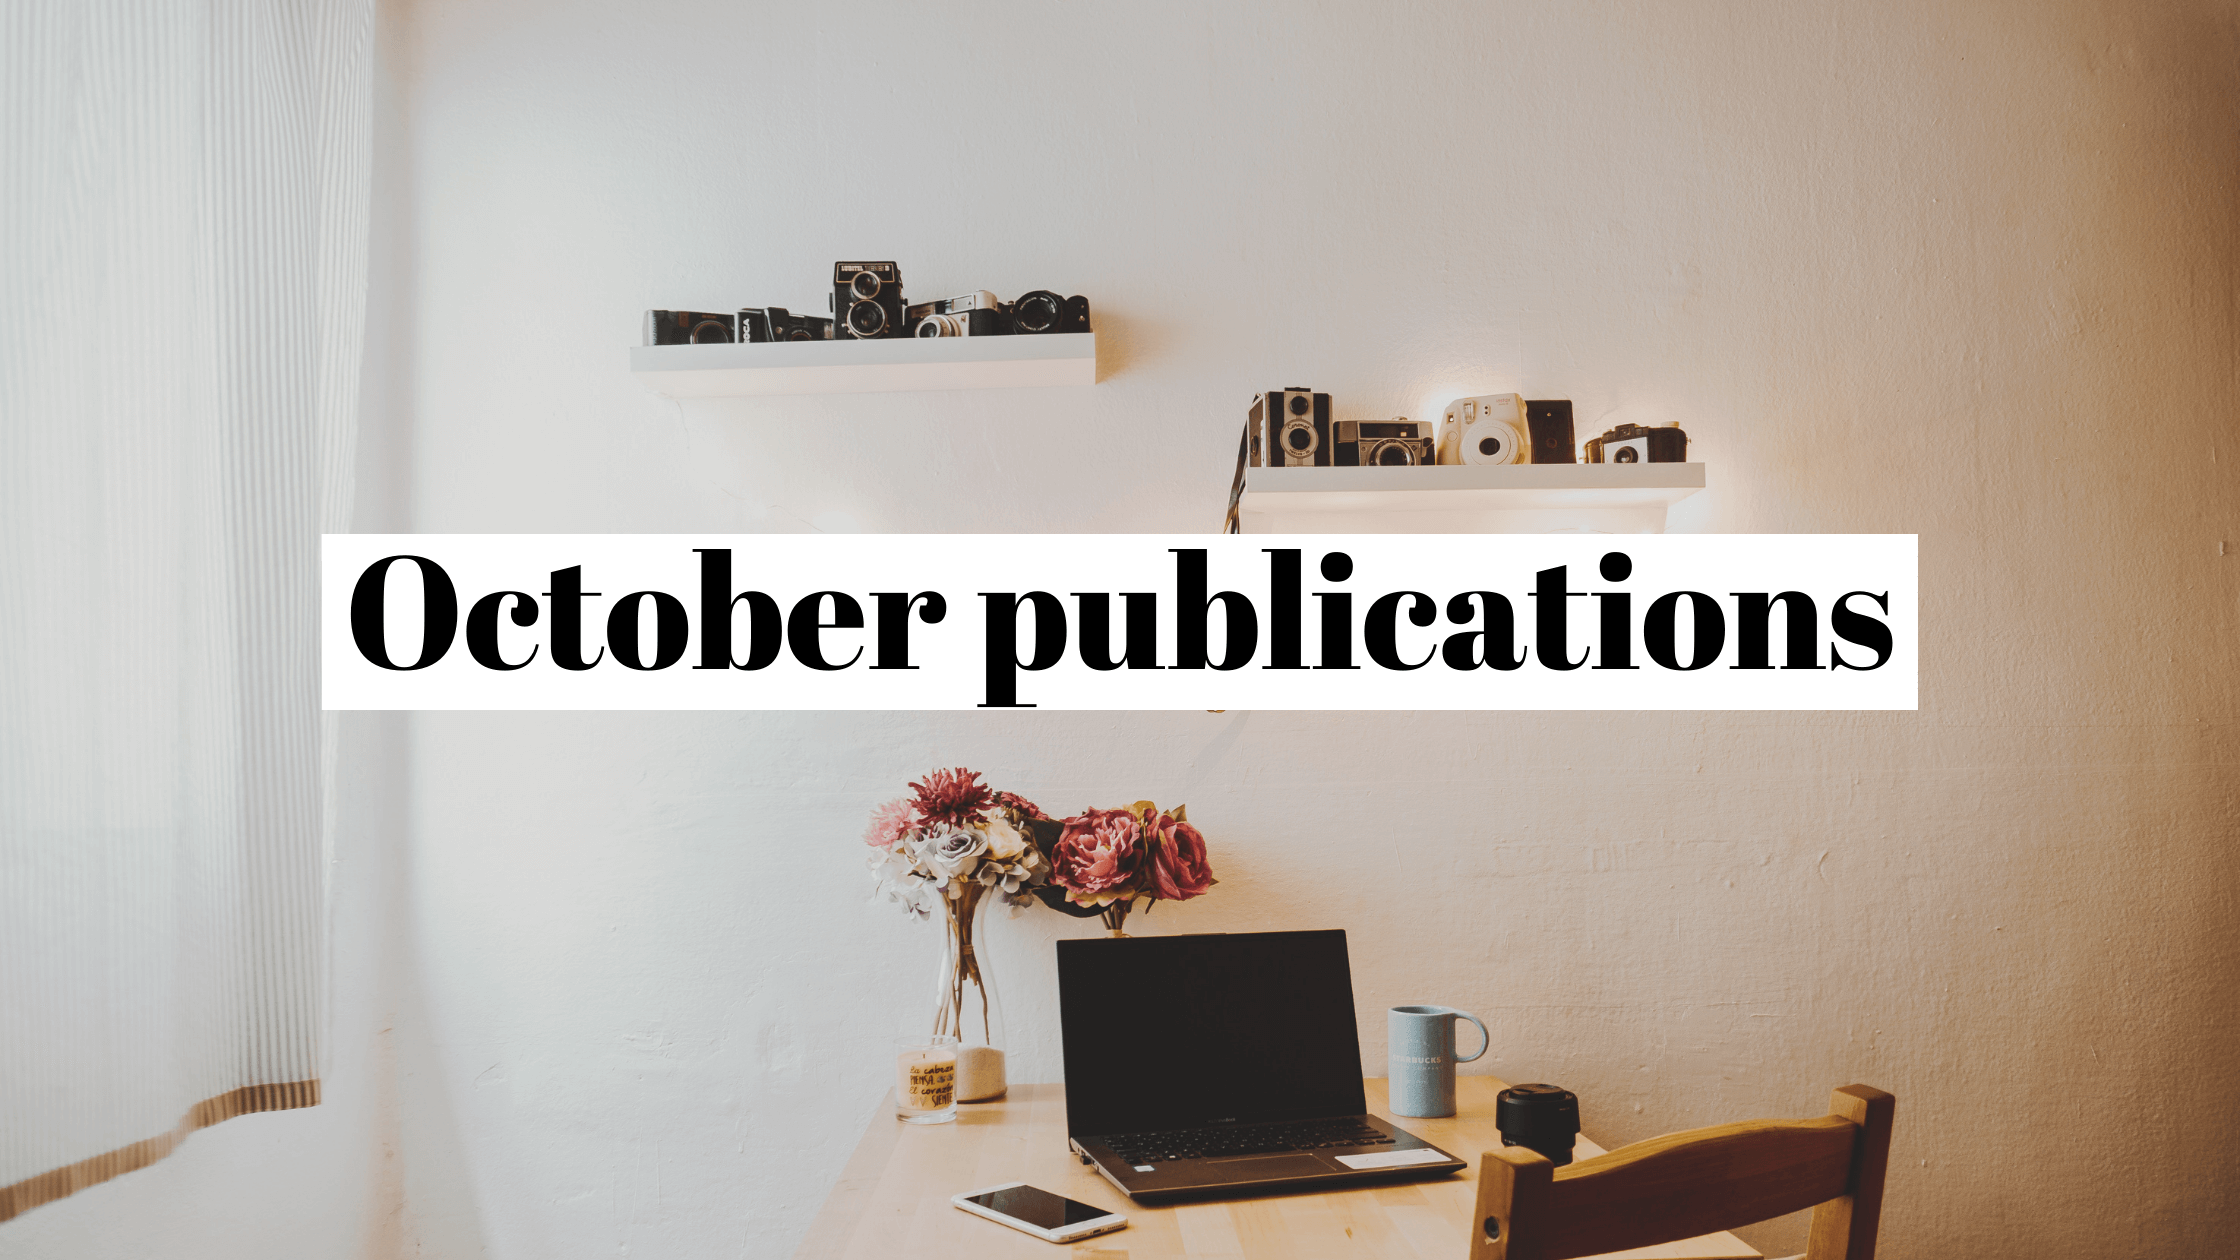 October 2020 publicity recap: howdy, remote work, our old friend